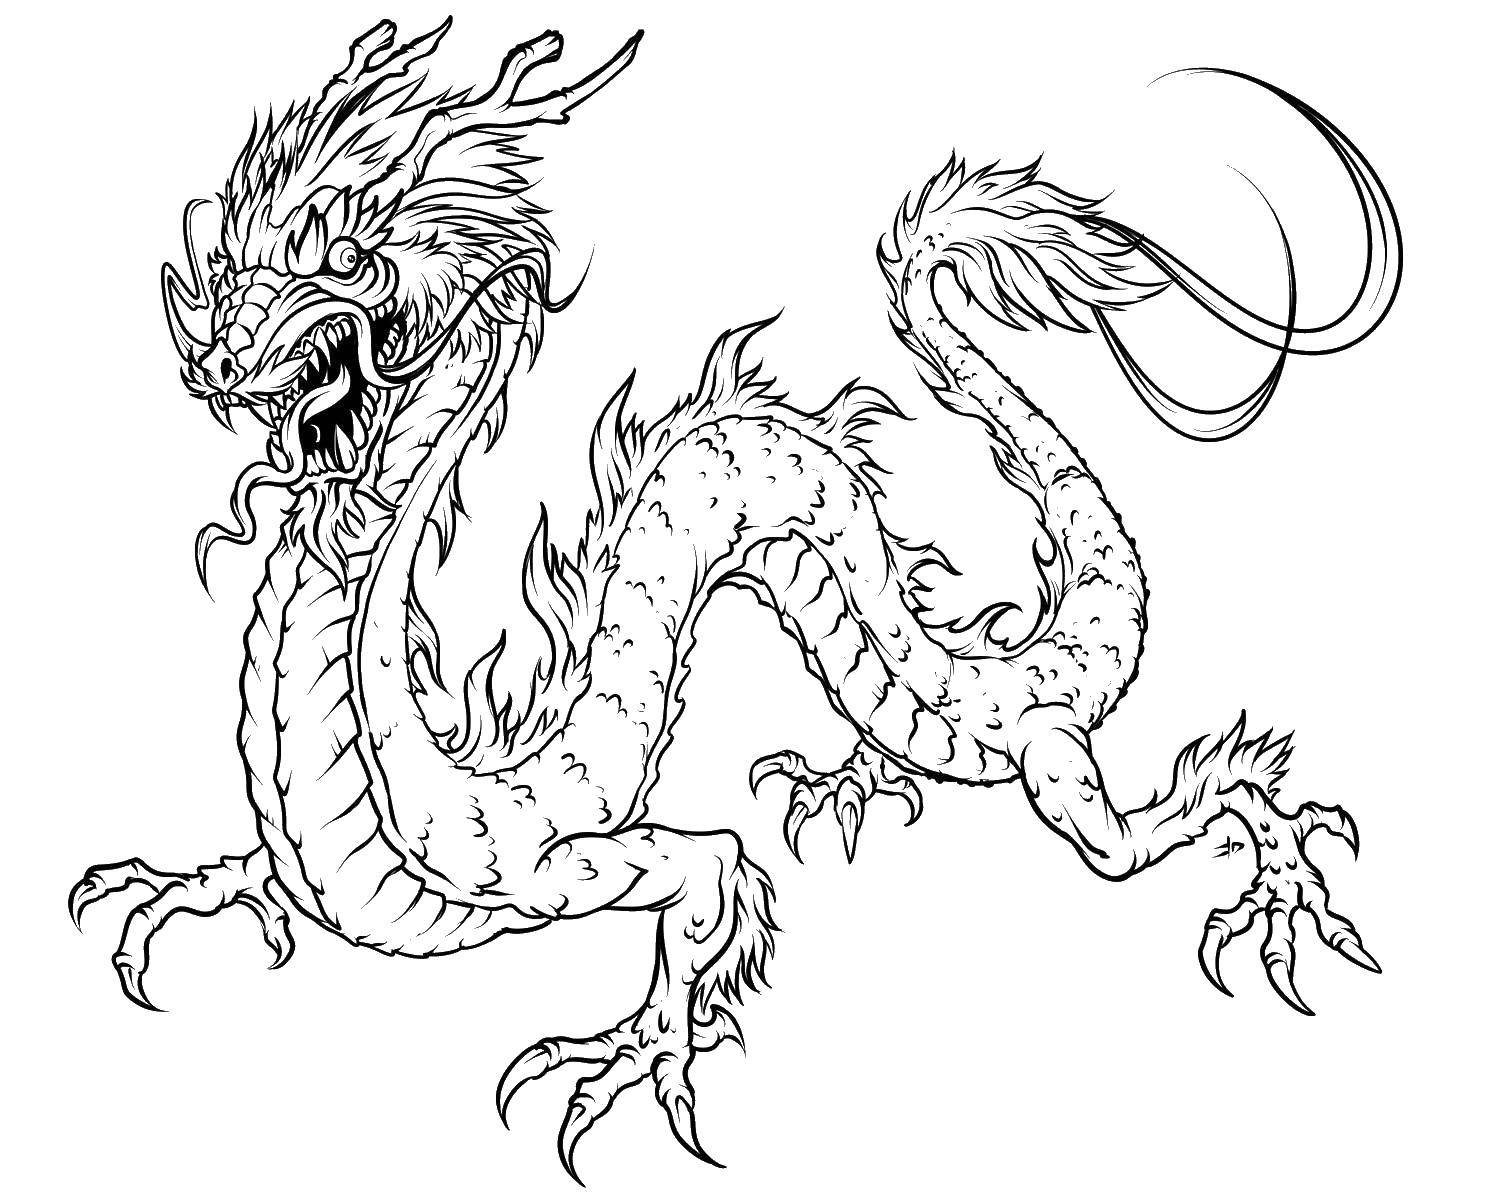 Online Coloring Pages Chinese, Coloring Page Chinese Dragon Dragons. - Free Printable Chinese Dragon Coloring Pages